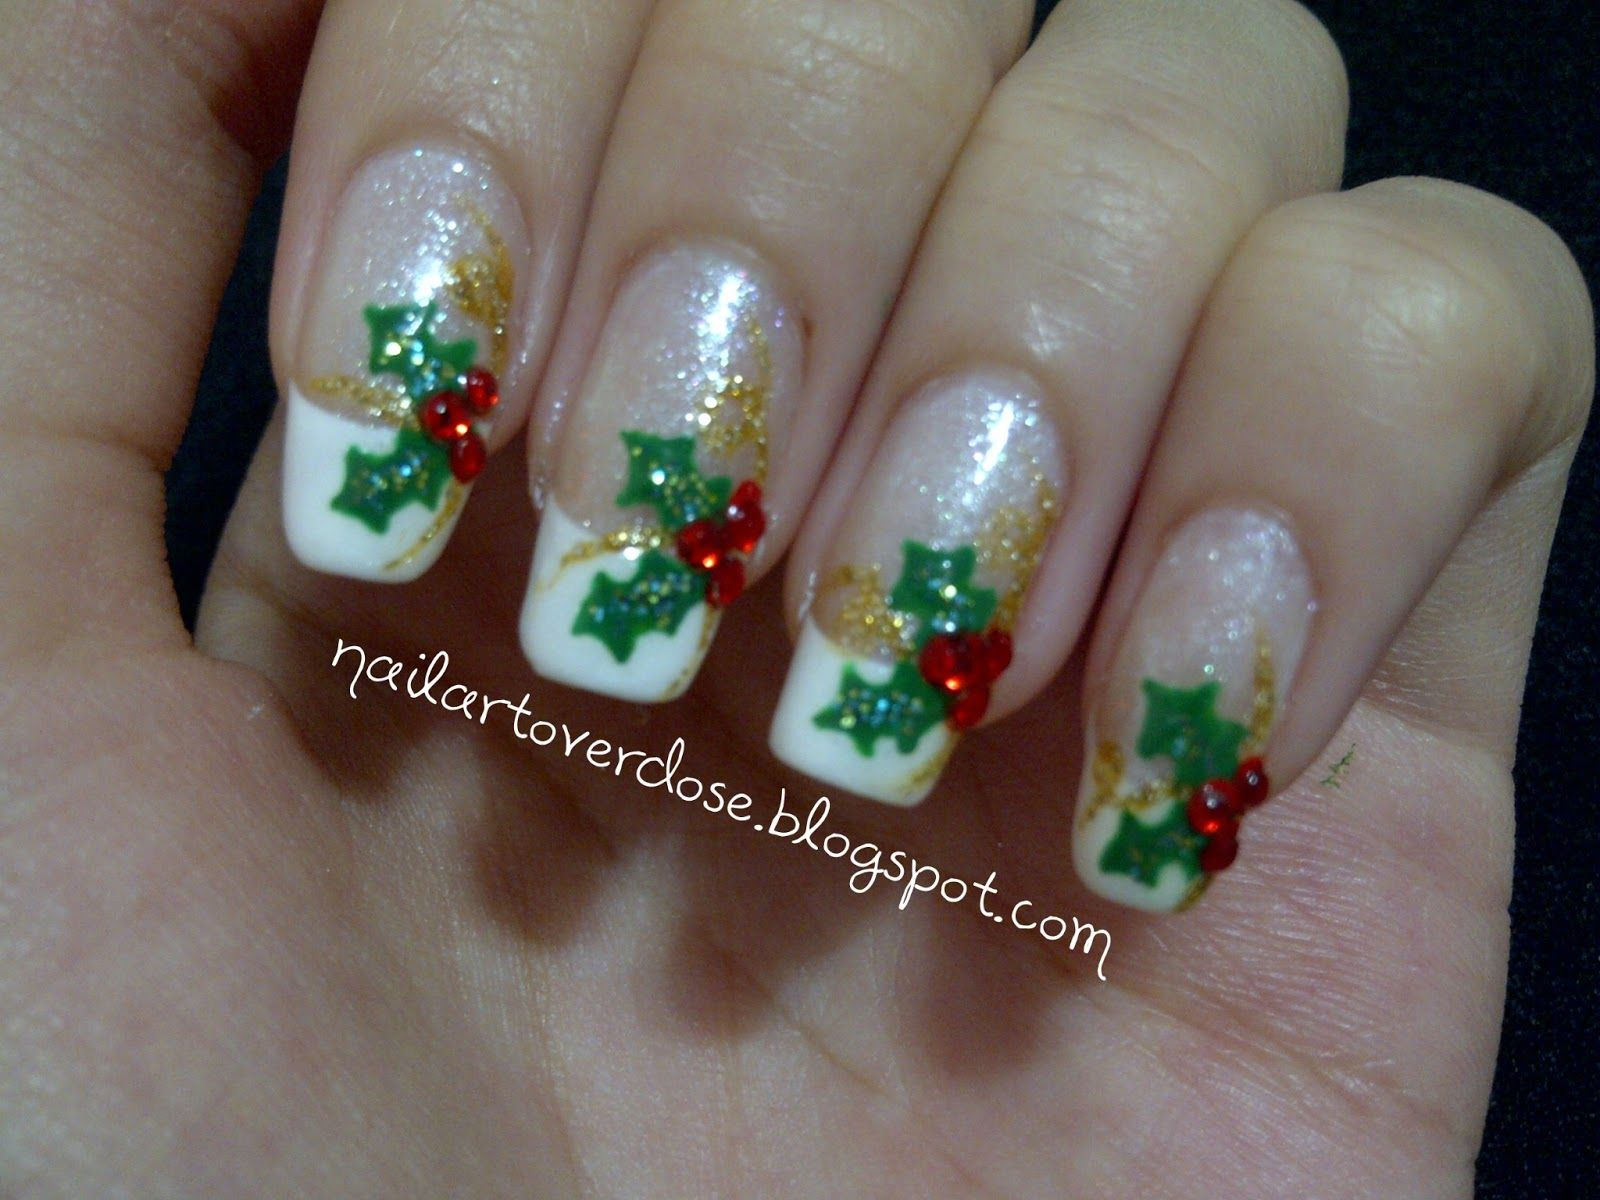 Holly nails nail art christmas and winter holidays pinterest holly nails christmas prinsesfo Gallery